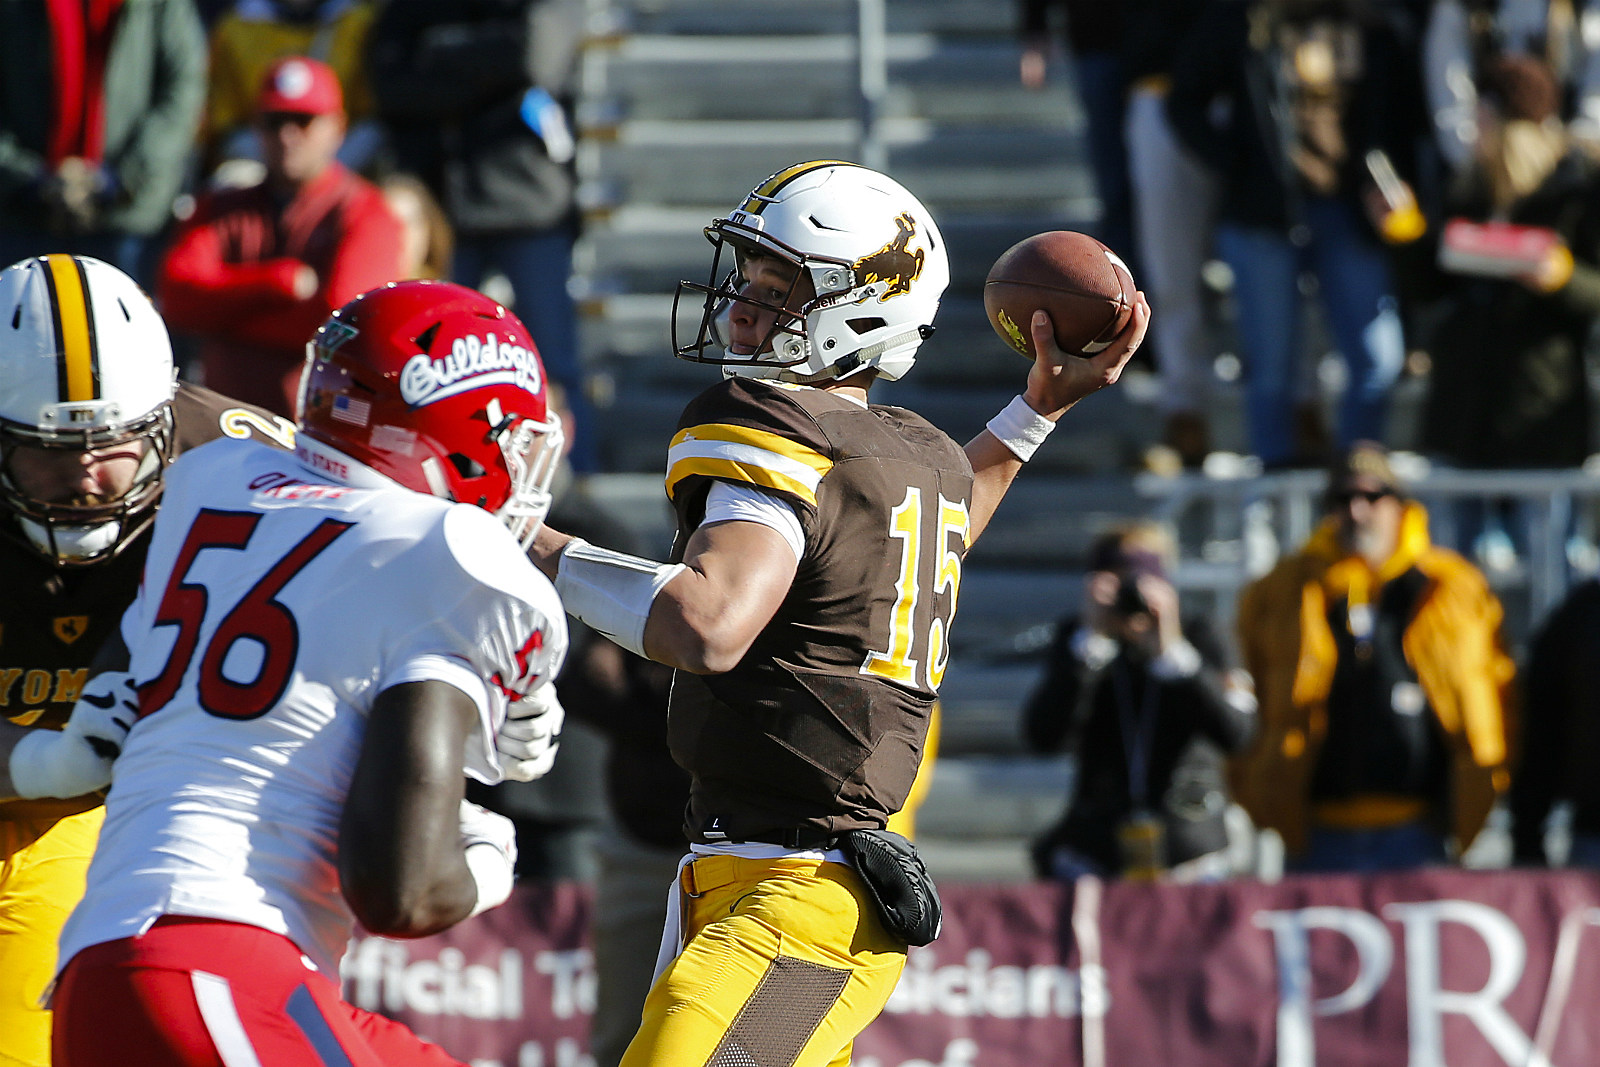 Wyoming Falls to Fresno State